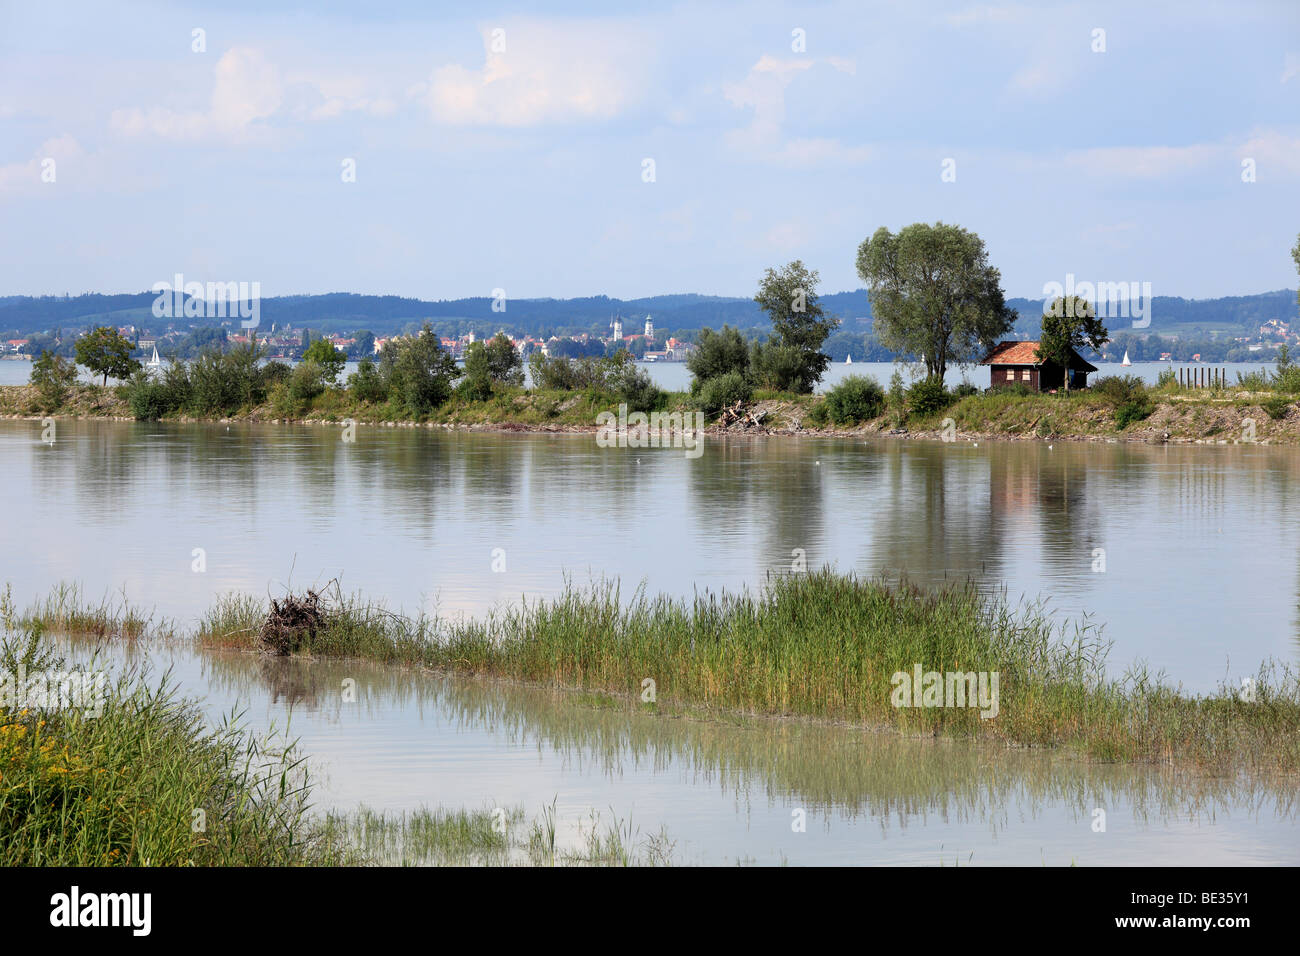 Mouth of the Rhine into Lake Constance, Rohrspitz am Fussach, Lindau at the rear, Vorarlberg, Austria, Europe - Stock Image